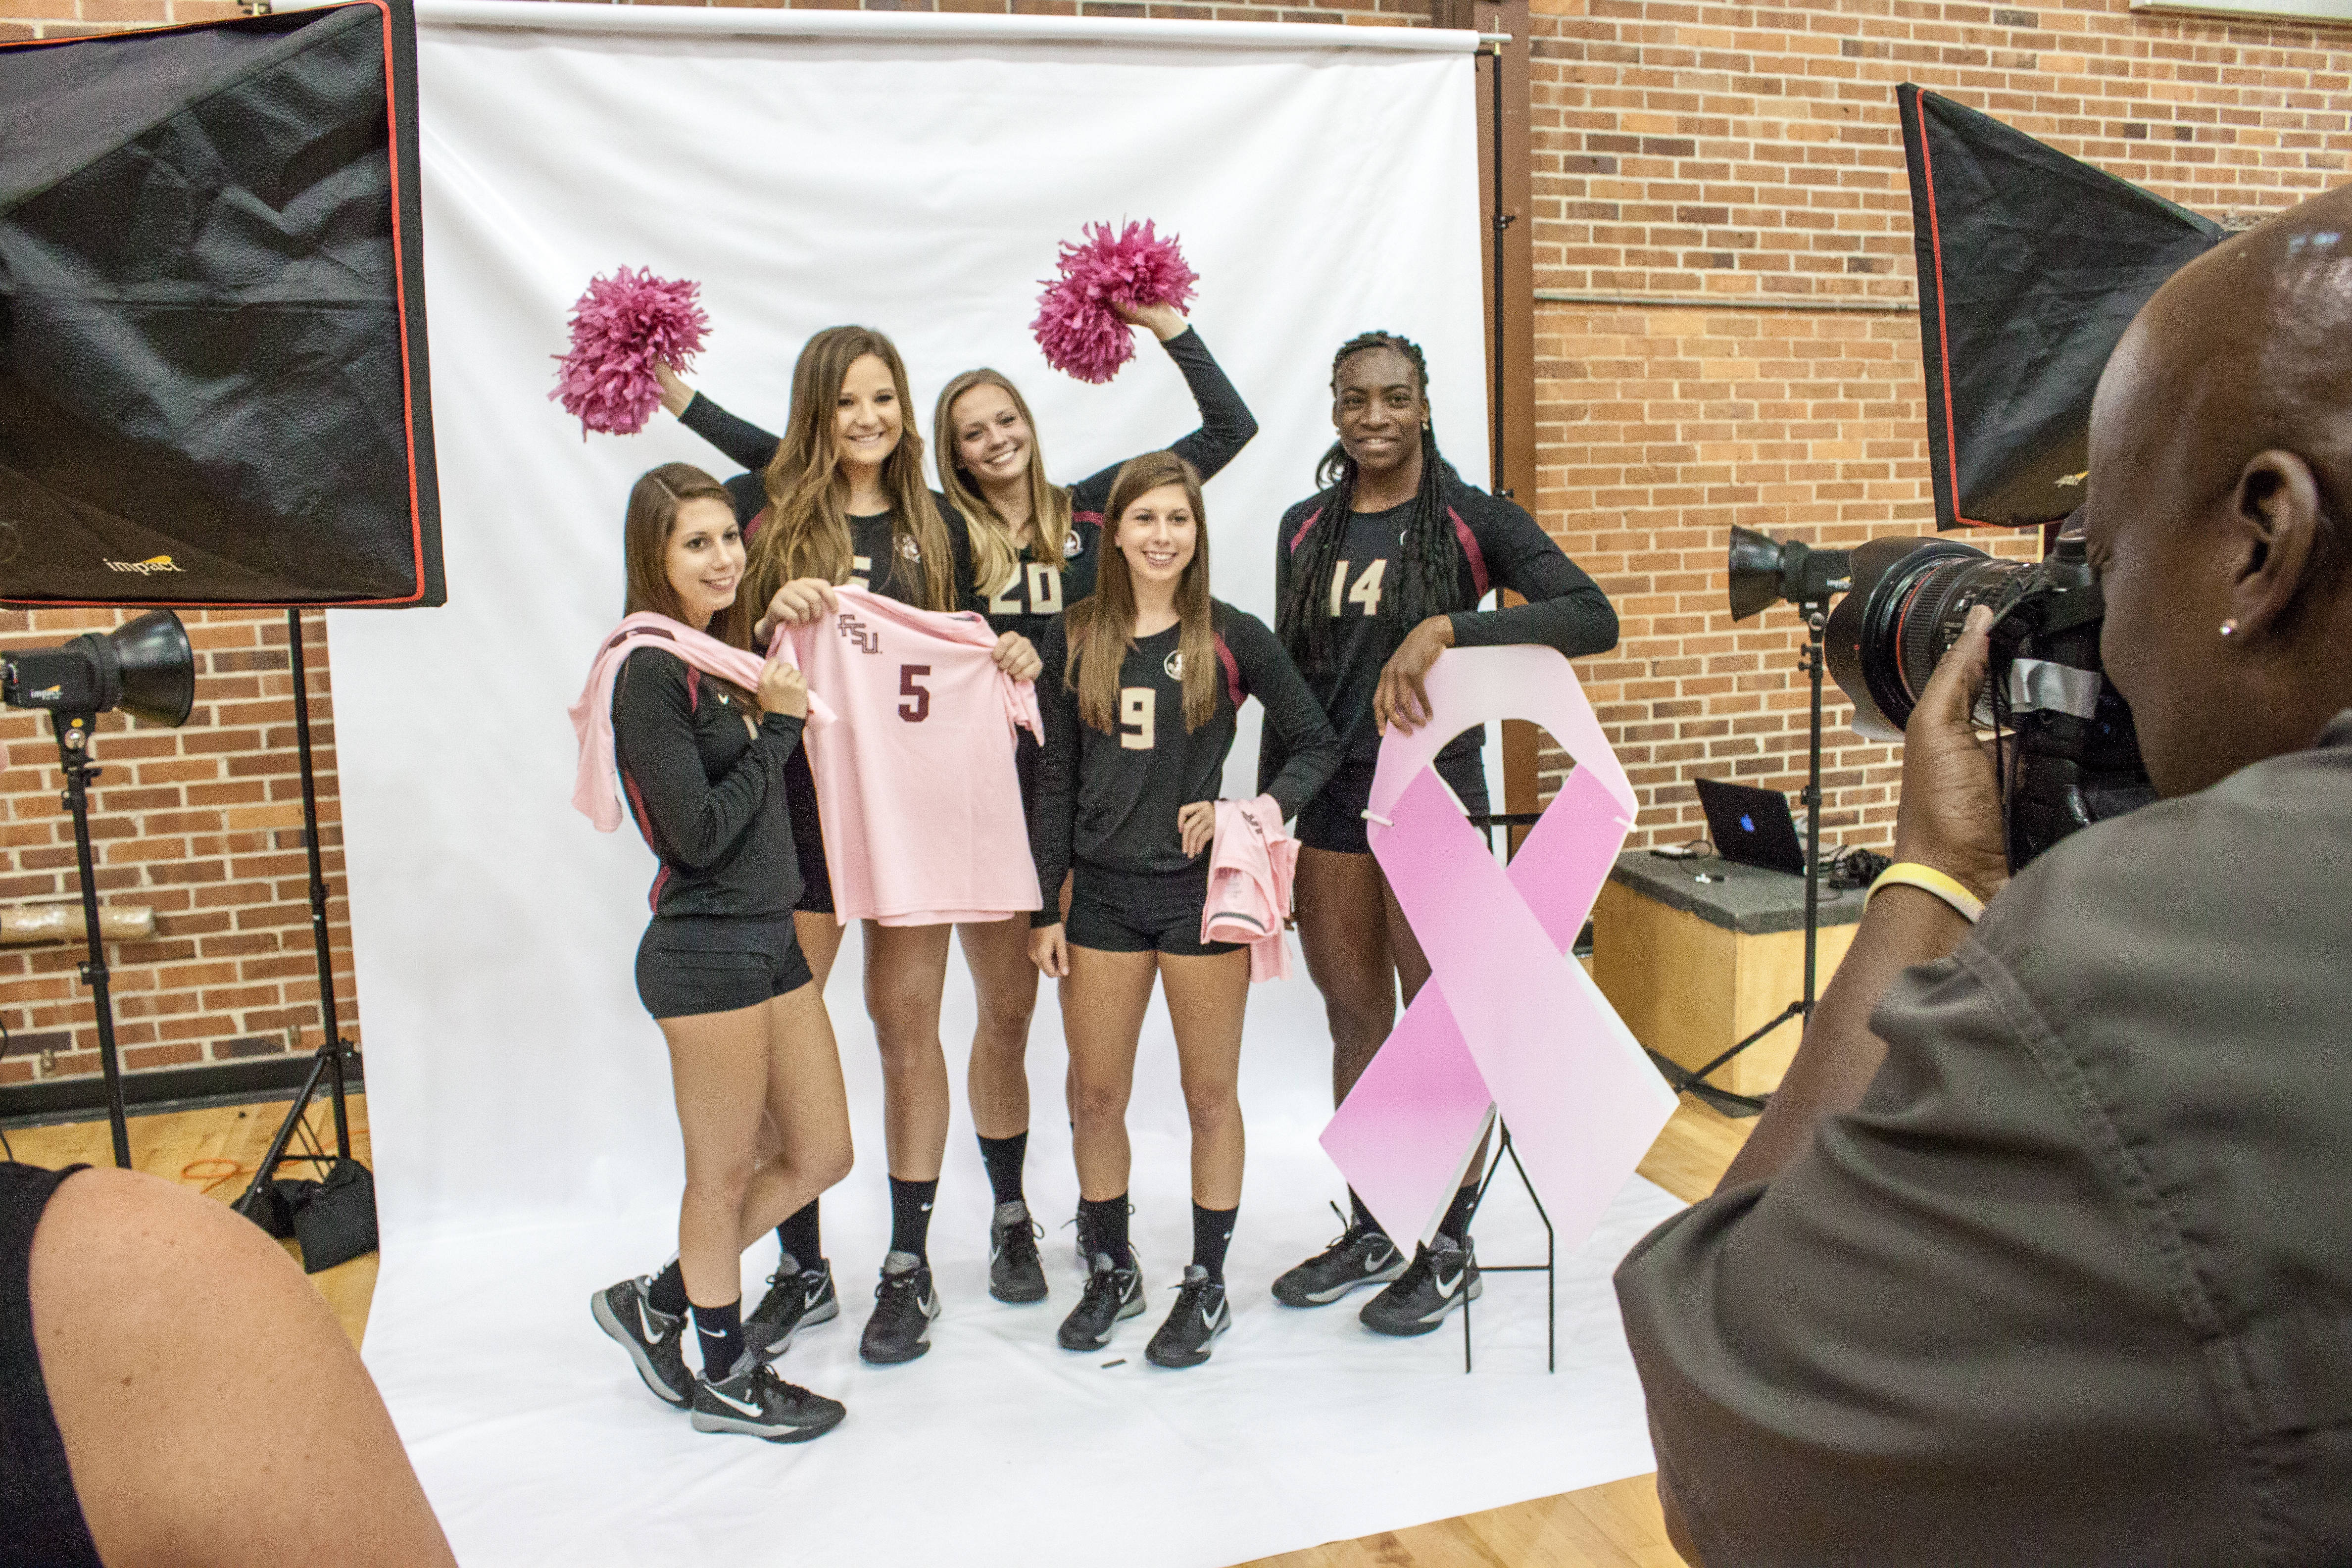 The Seniors pose with some pink items, gearing up for the 2015-16 Paint it Pink campaign.